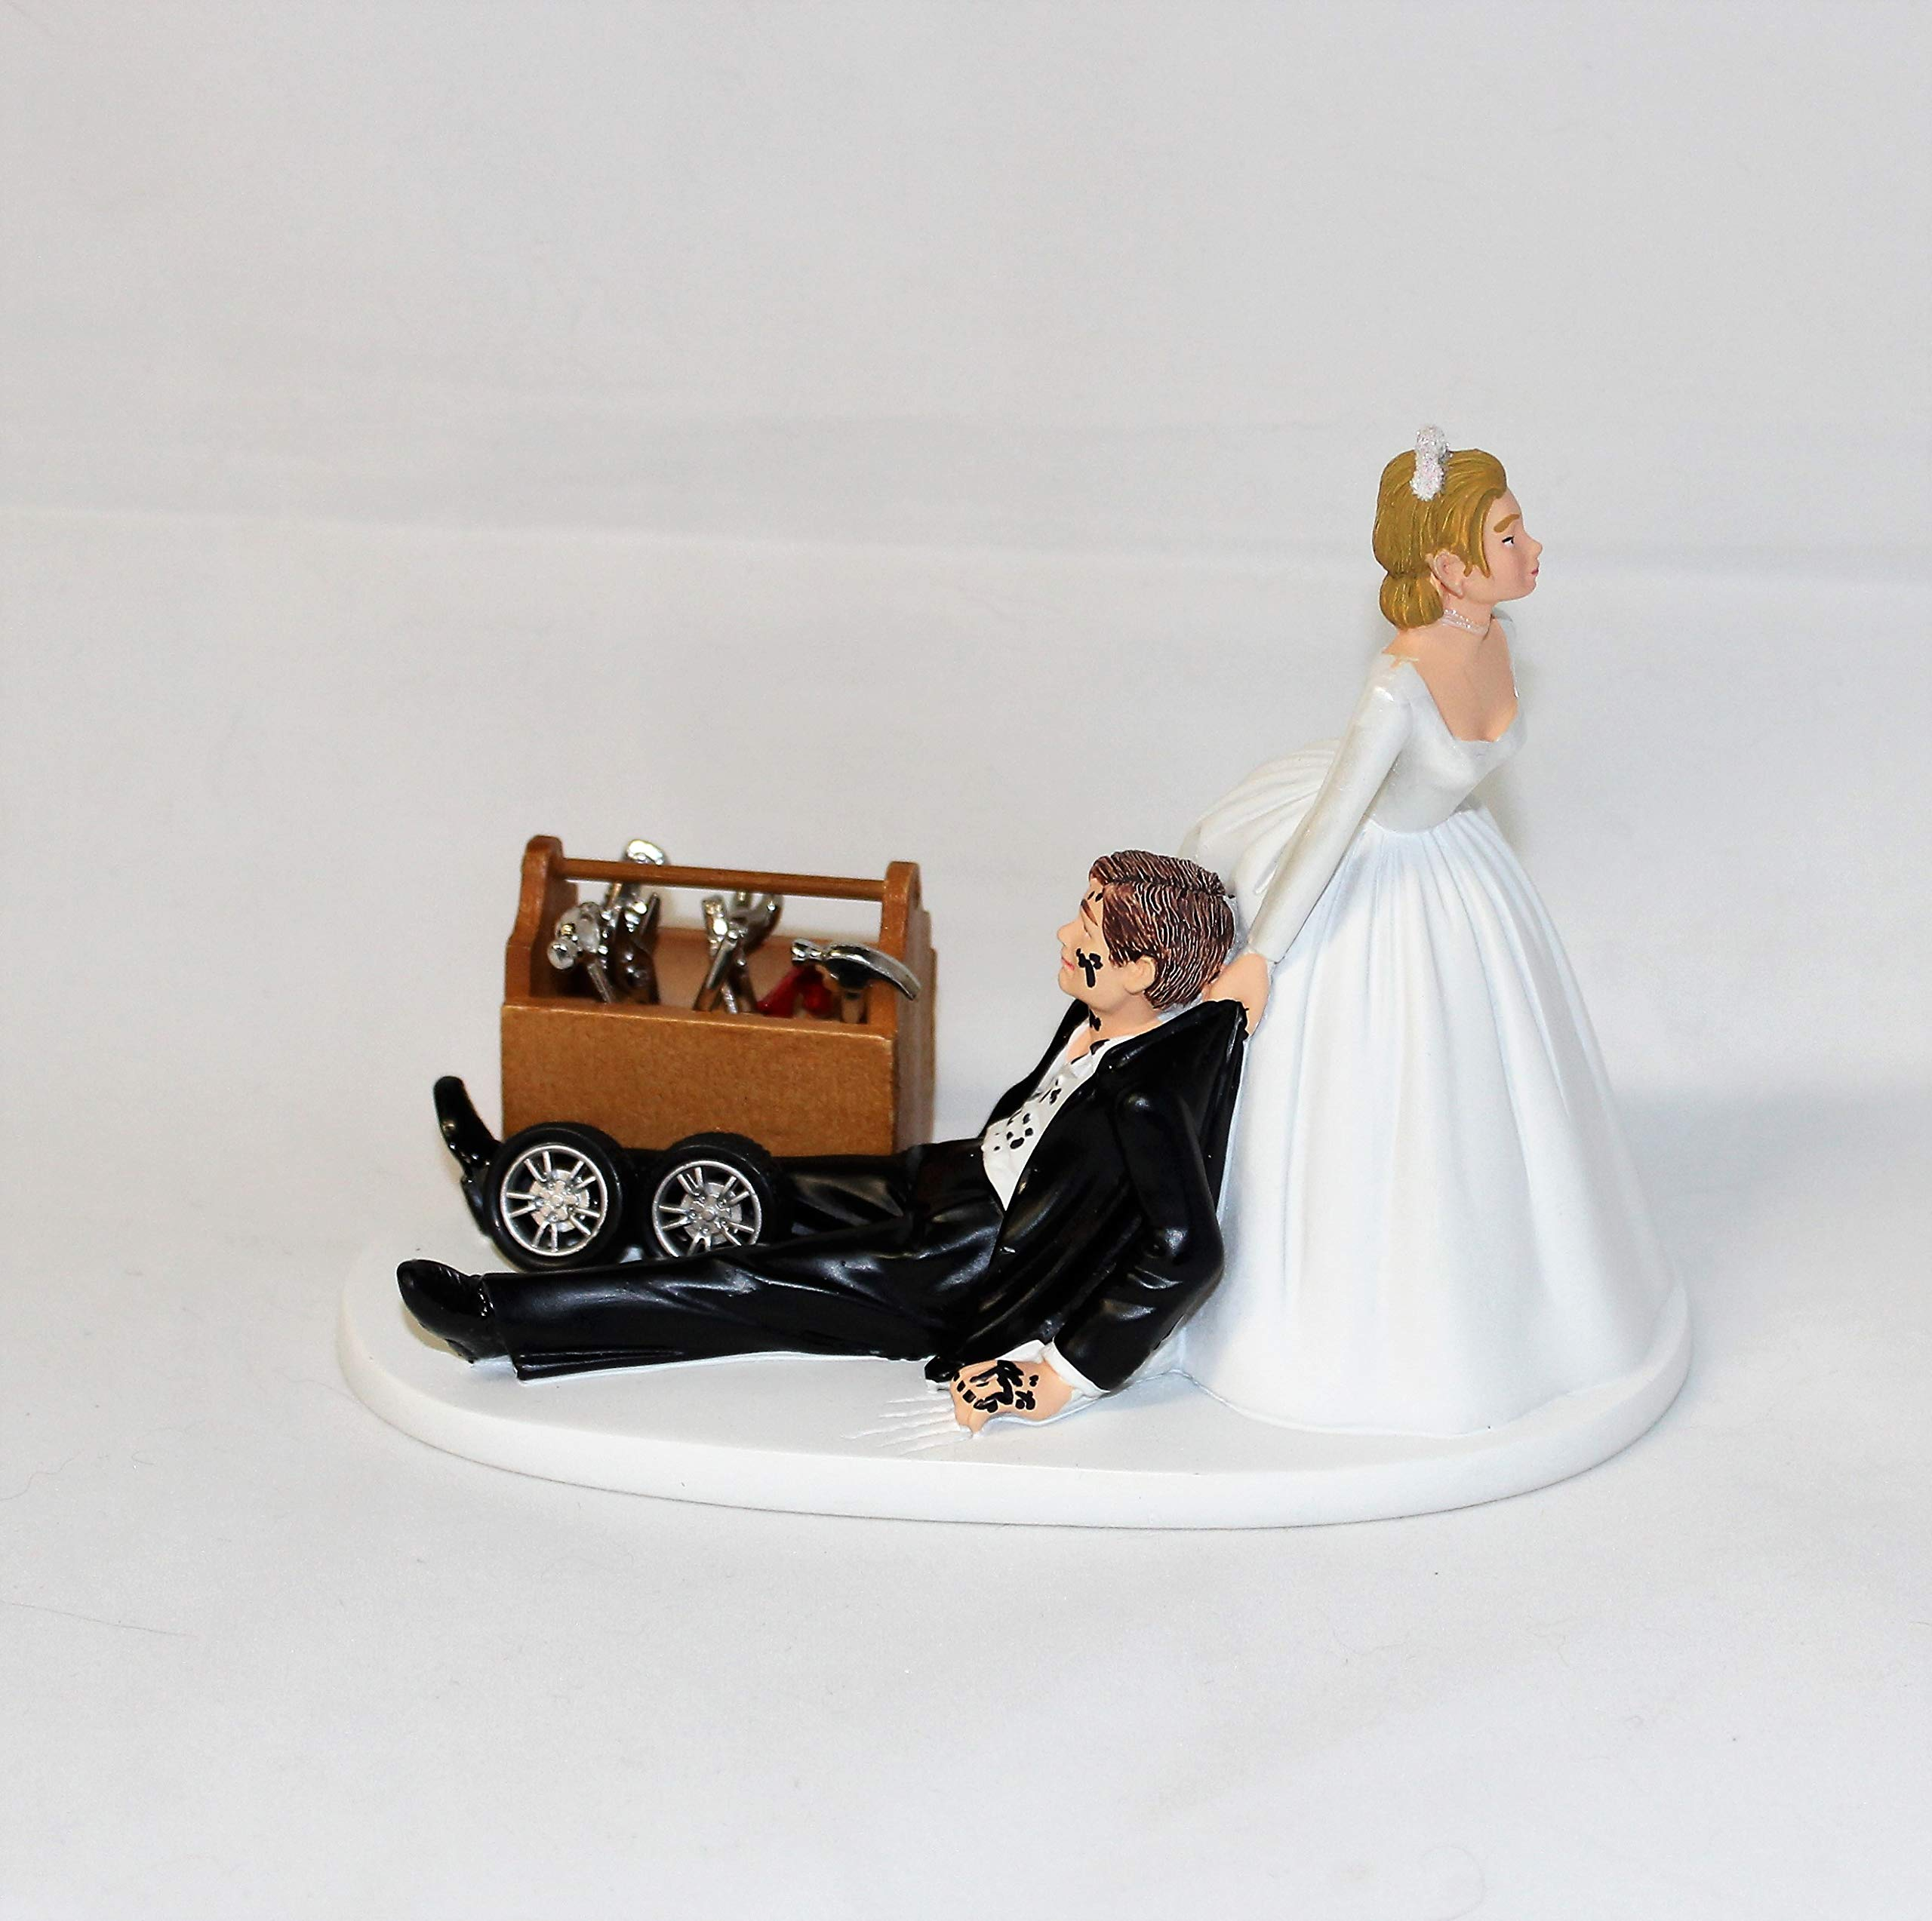 Wedding Reception Party Shop Garage Mechanic tool grease Cake Topper by Custom Design Wedding Supplies by Suzanne (Image #2)